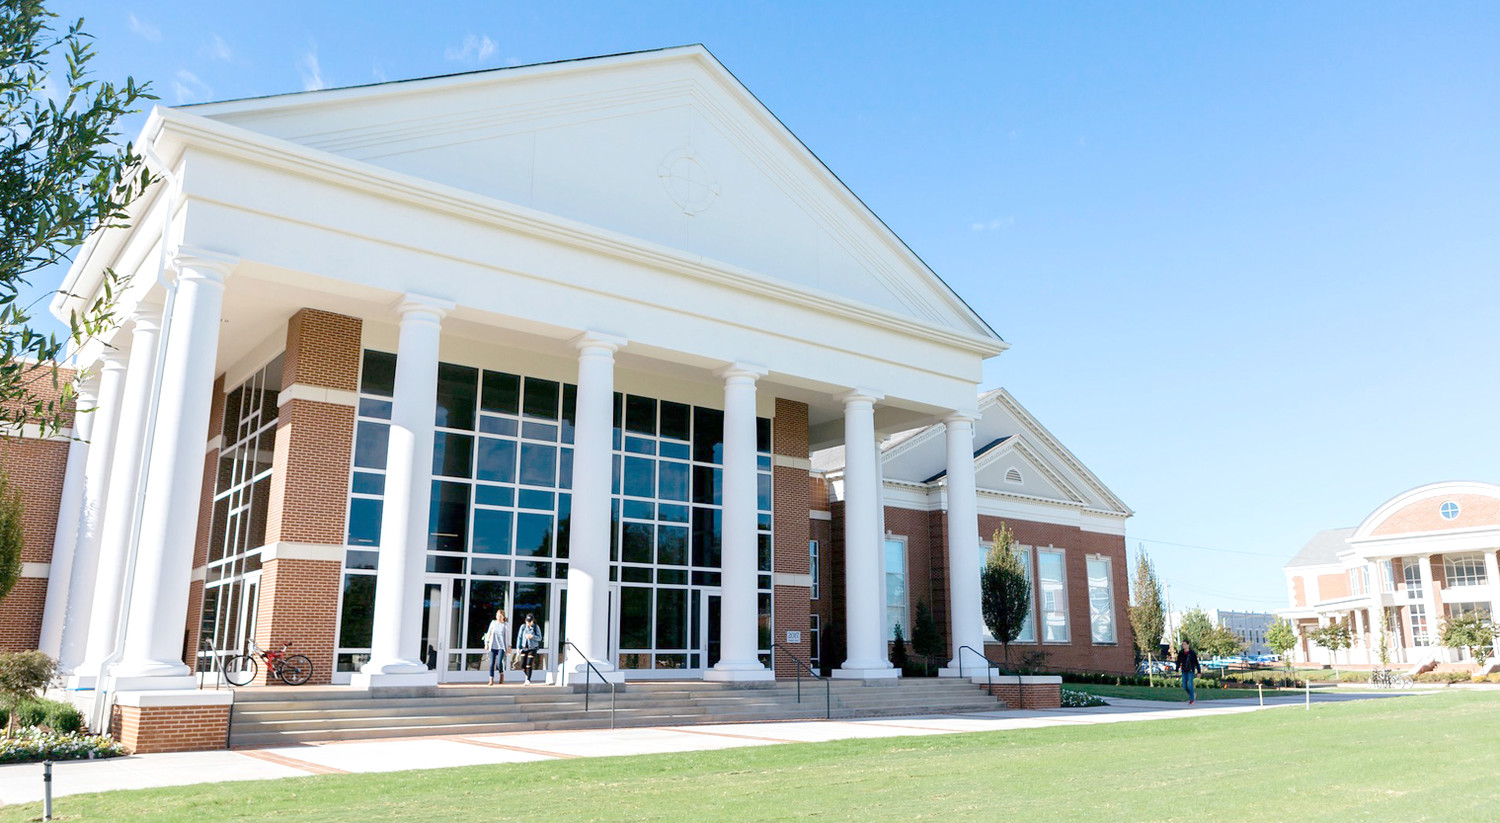 LEE UNIVERSITY's new School of Business is planning an open house for members of the community this Thursday. This education wing is located in the former First Baptist Church building, providing an entrance which overlooks the South Campus Quad.